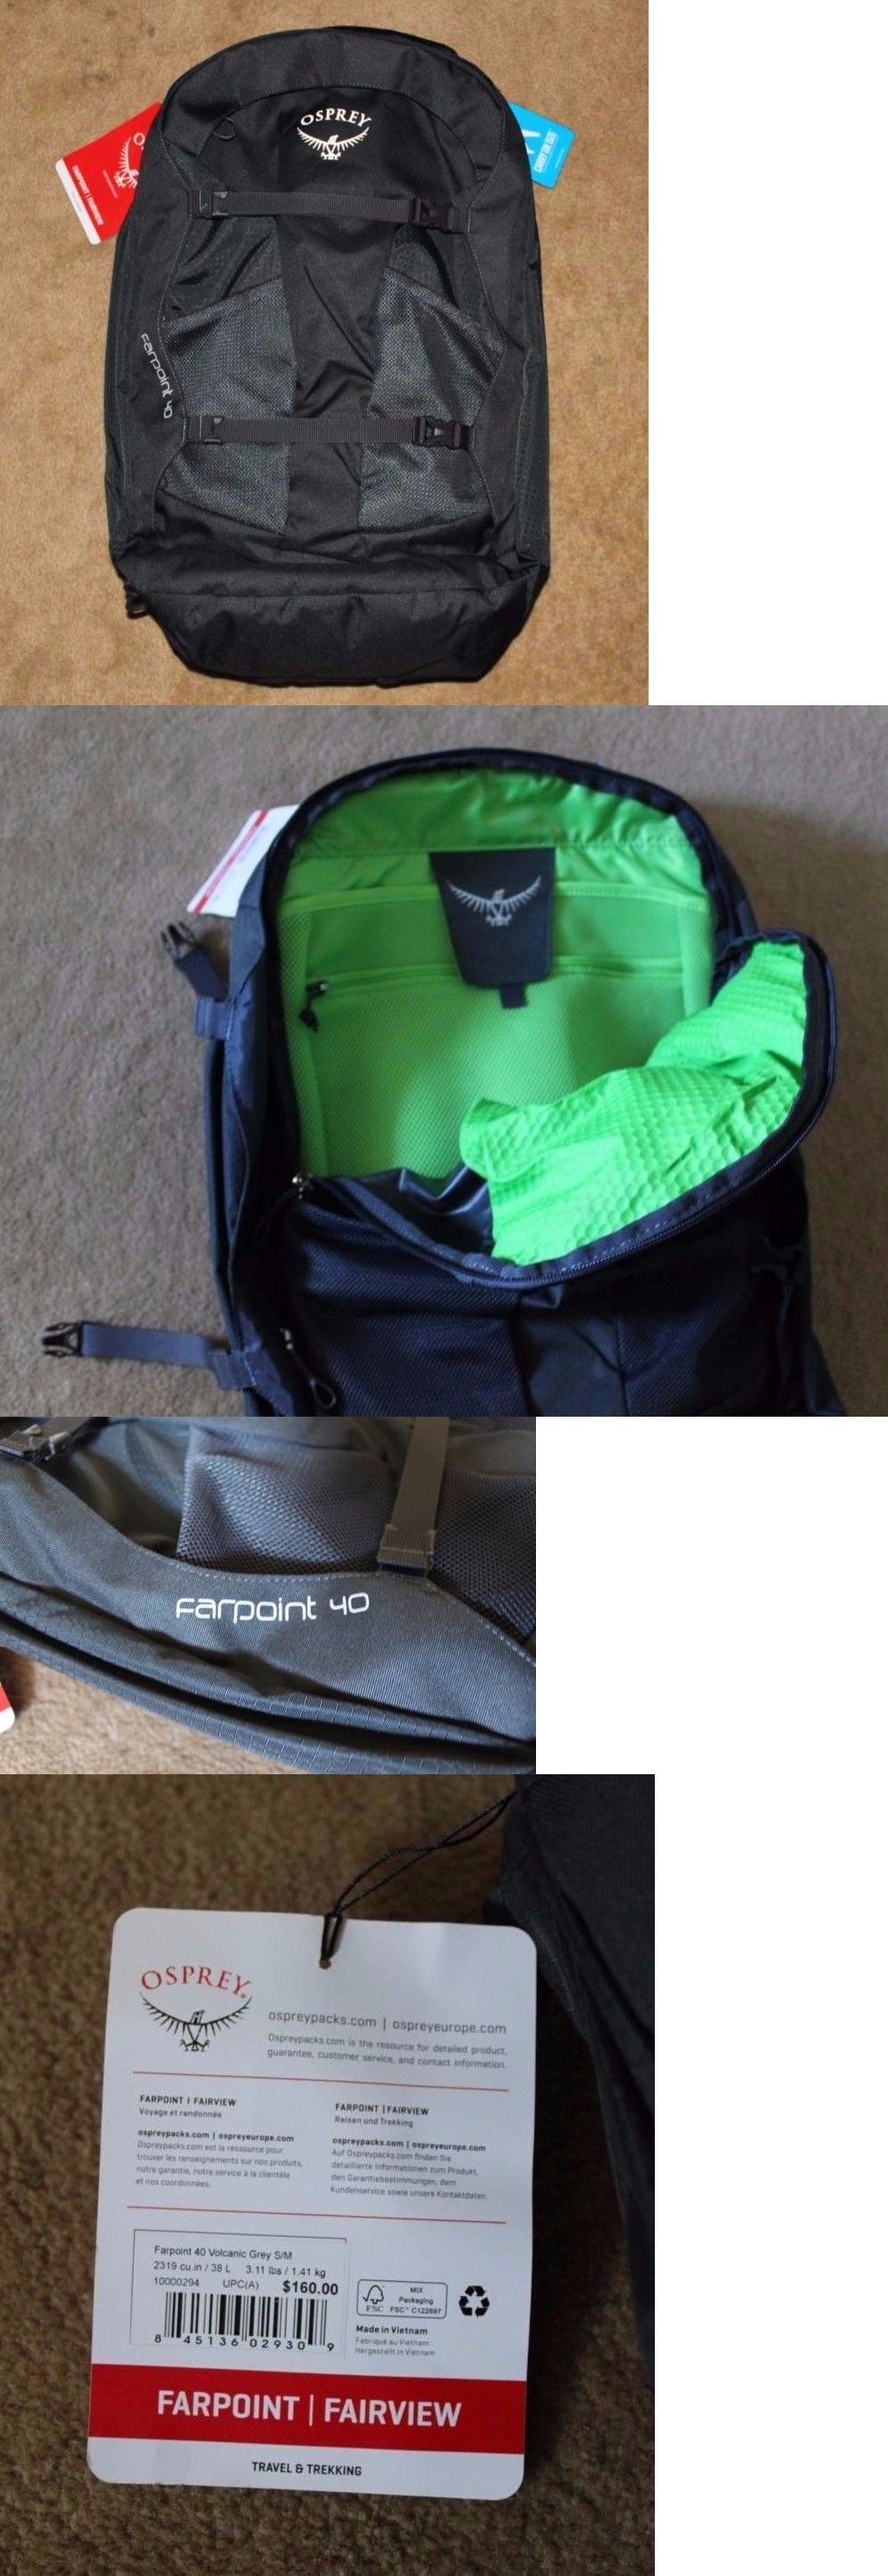 Other Camping Hiking Backpacks 36109  New Osprey Farpoint 40 Travel Backpack  S M Volcanic Gray - 8ec3d484cd